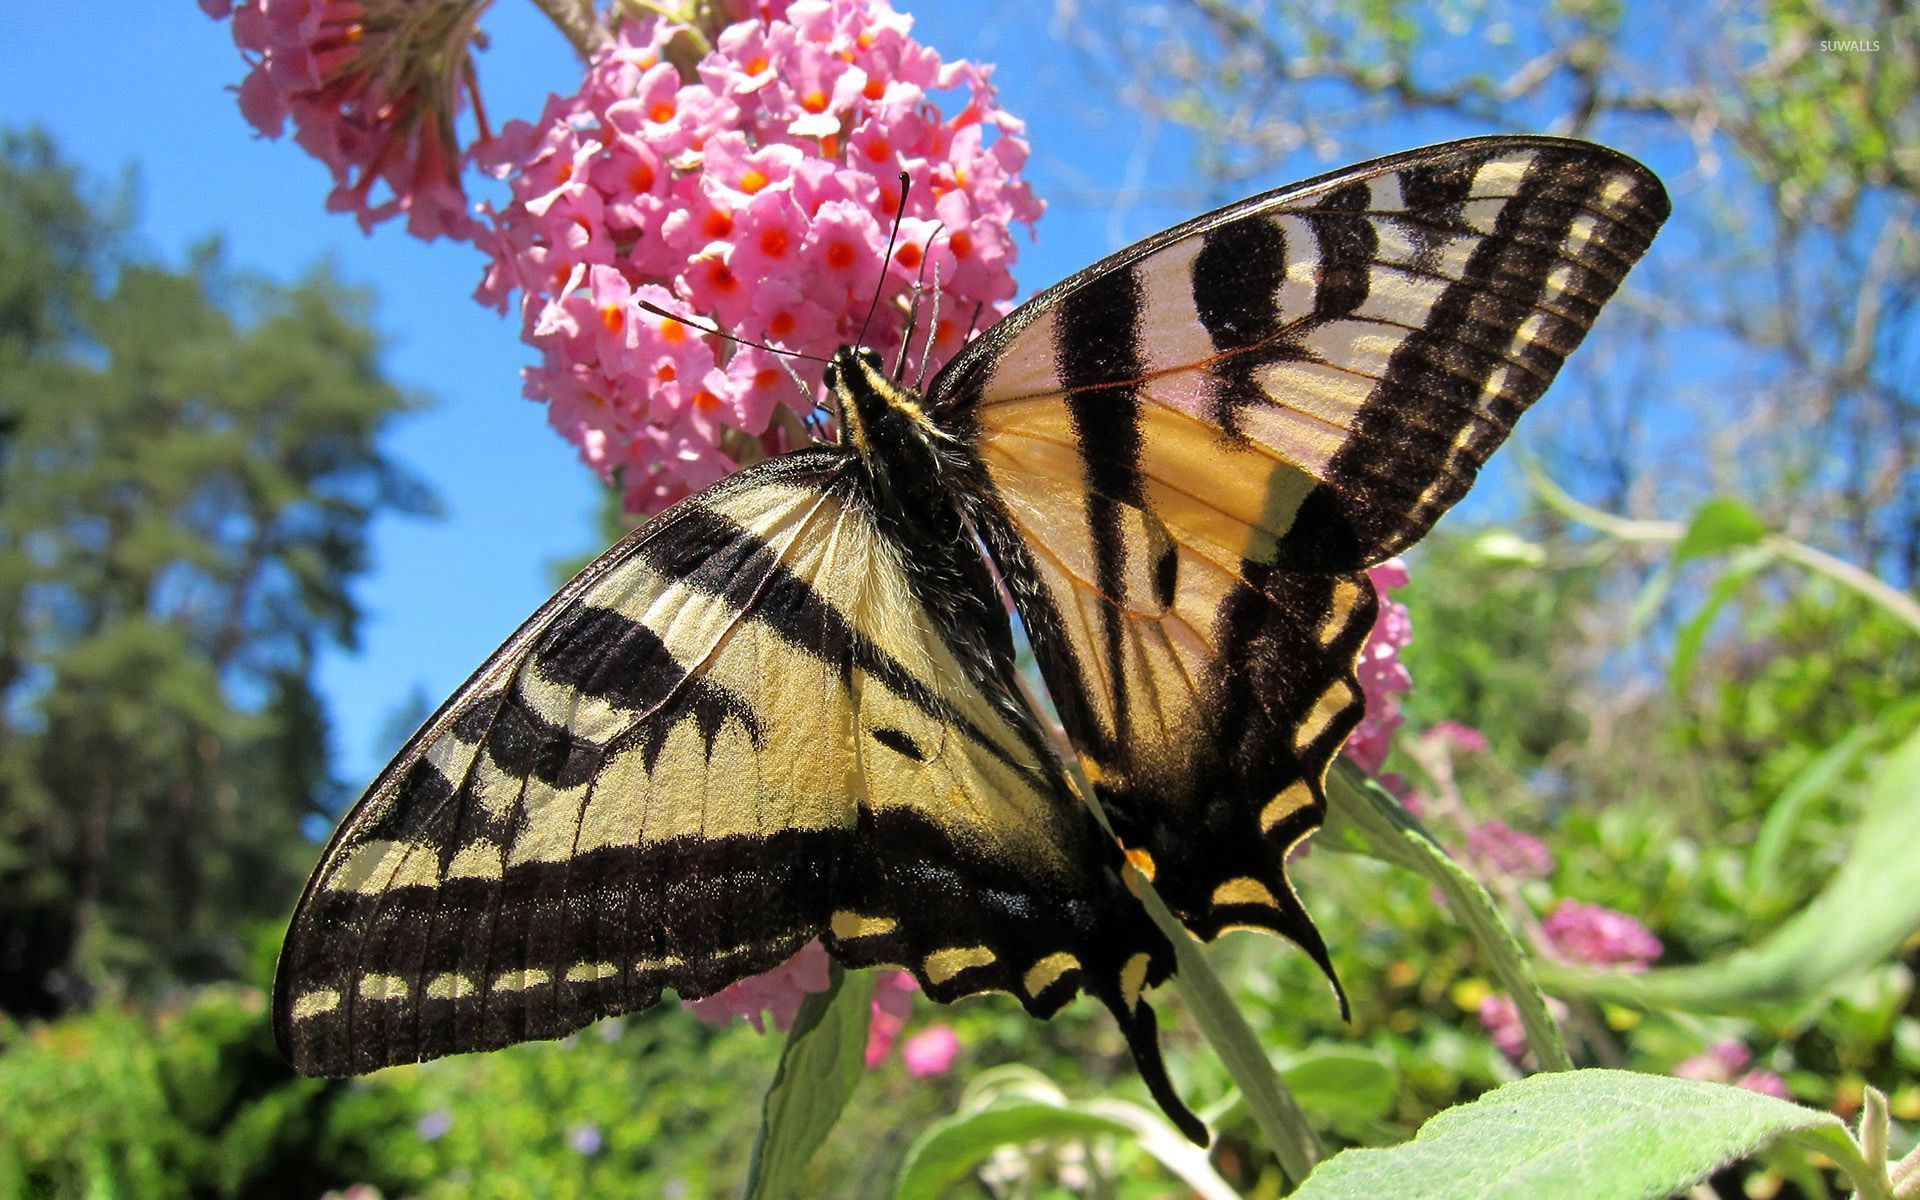 Butterfly on the pink flower wallpaper - Animal wallpapers ...